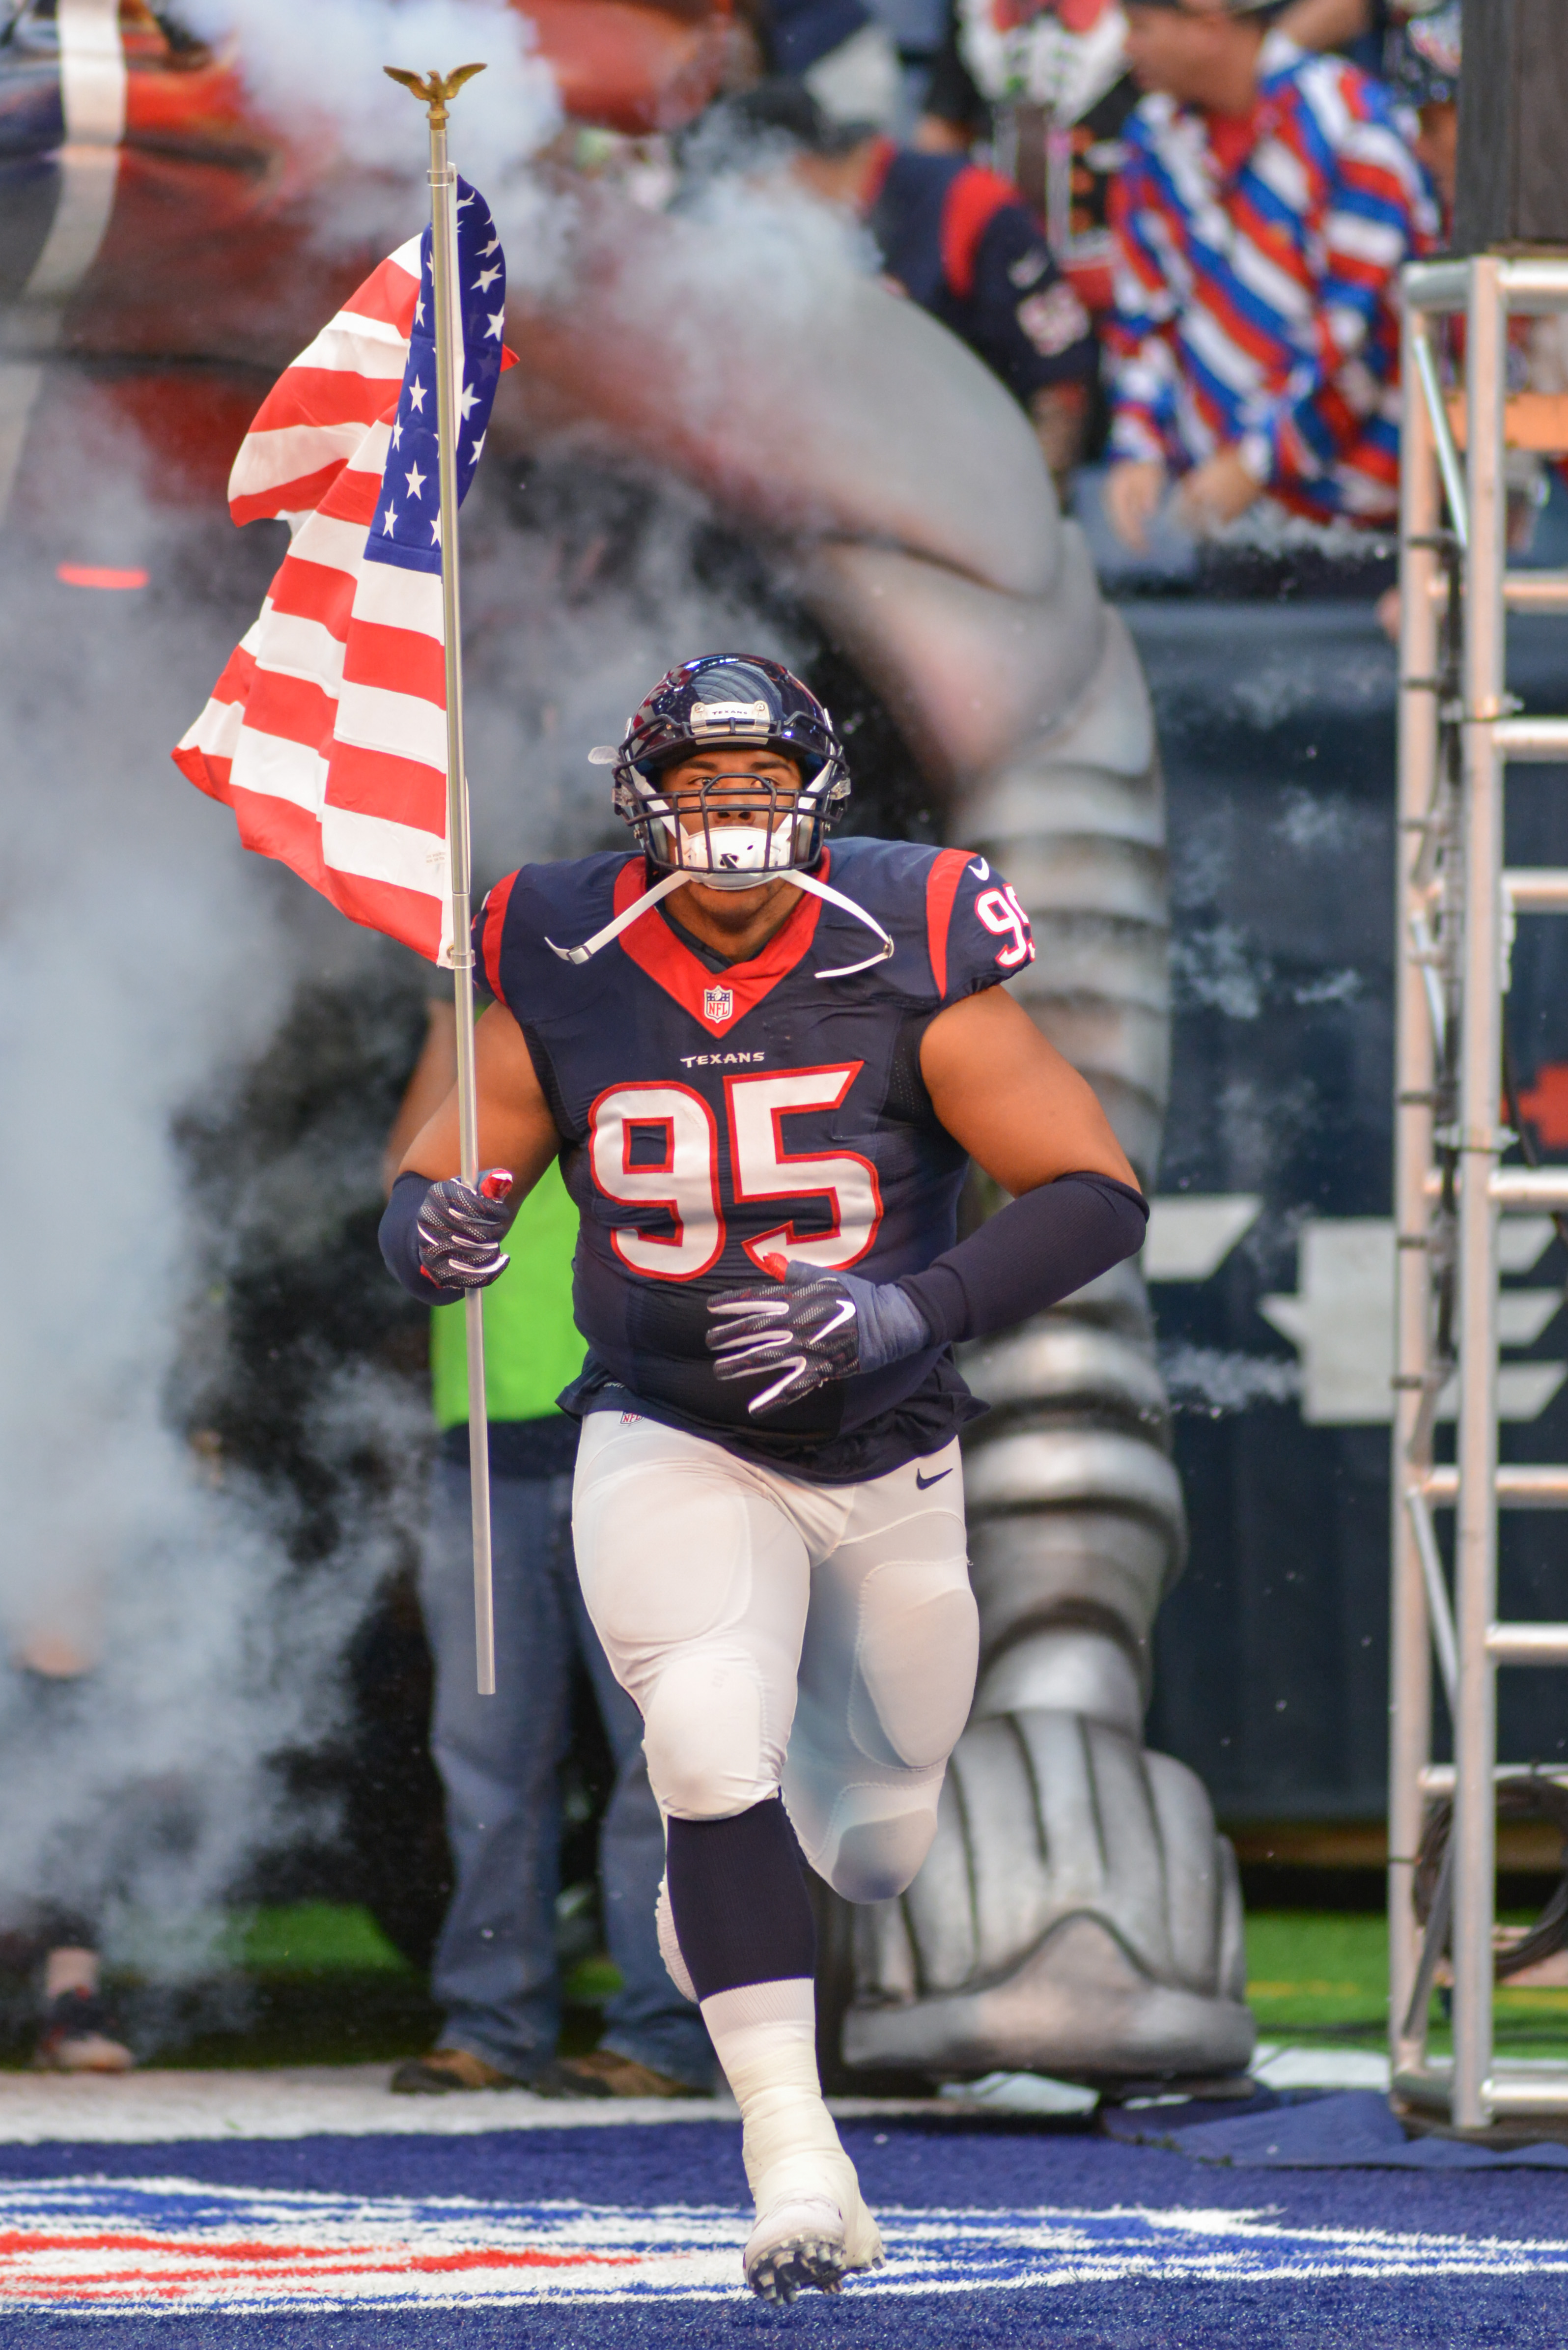 <div class='meta'><div class='origin-logo' data-origin='KTRK'></div><span class='caption-text' data-credit='Photo by Michelle Watson/CatchLi'>Houston Texans win over the Detroit Lions in a Salute to Service game honoring the armed forces at NRG Stadium.</span></div>